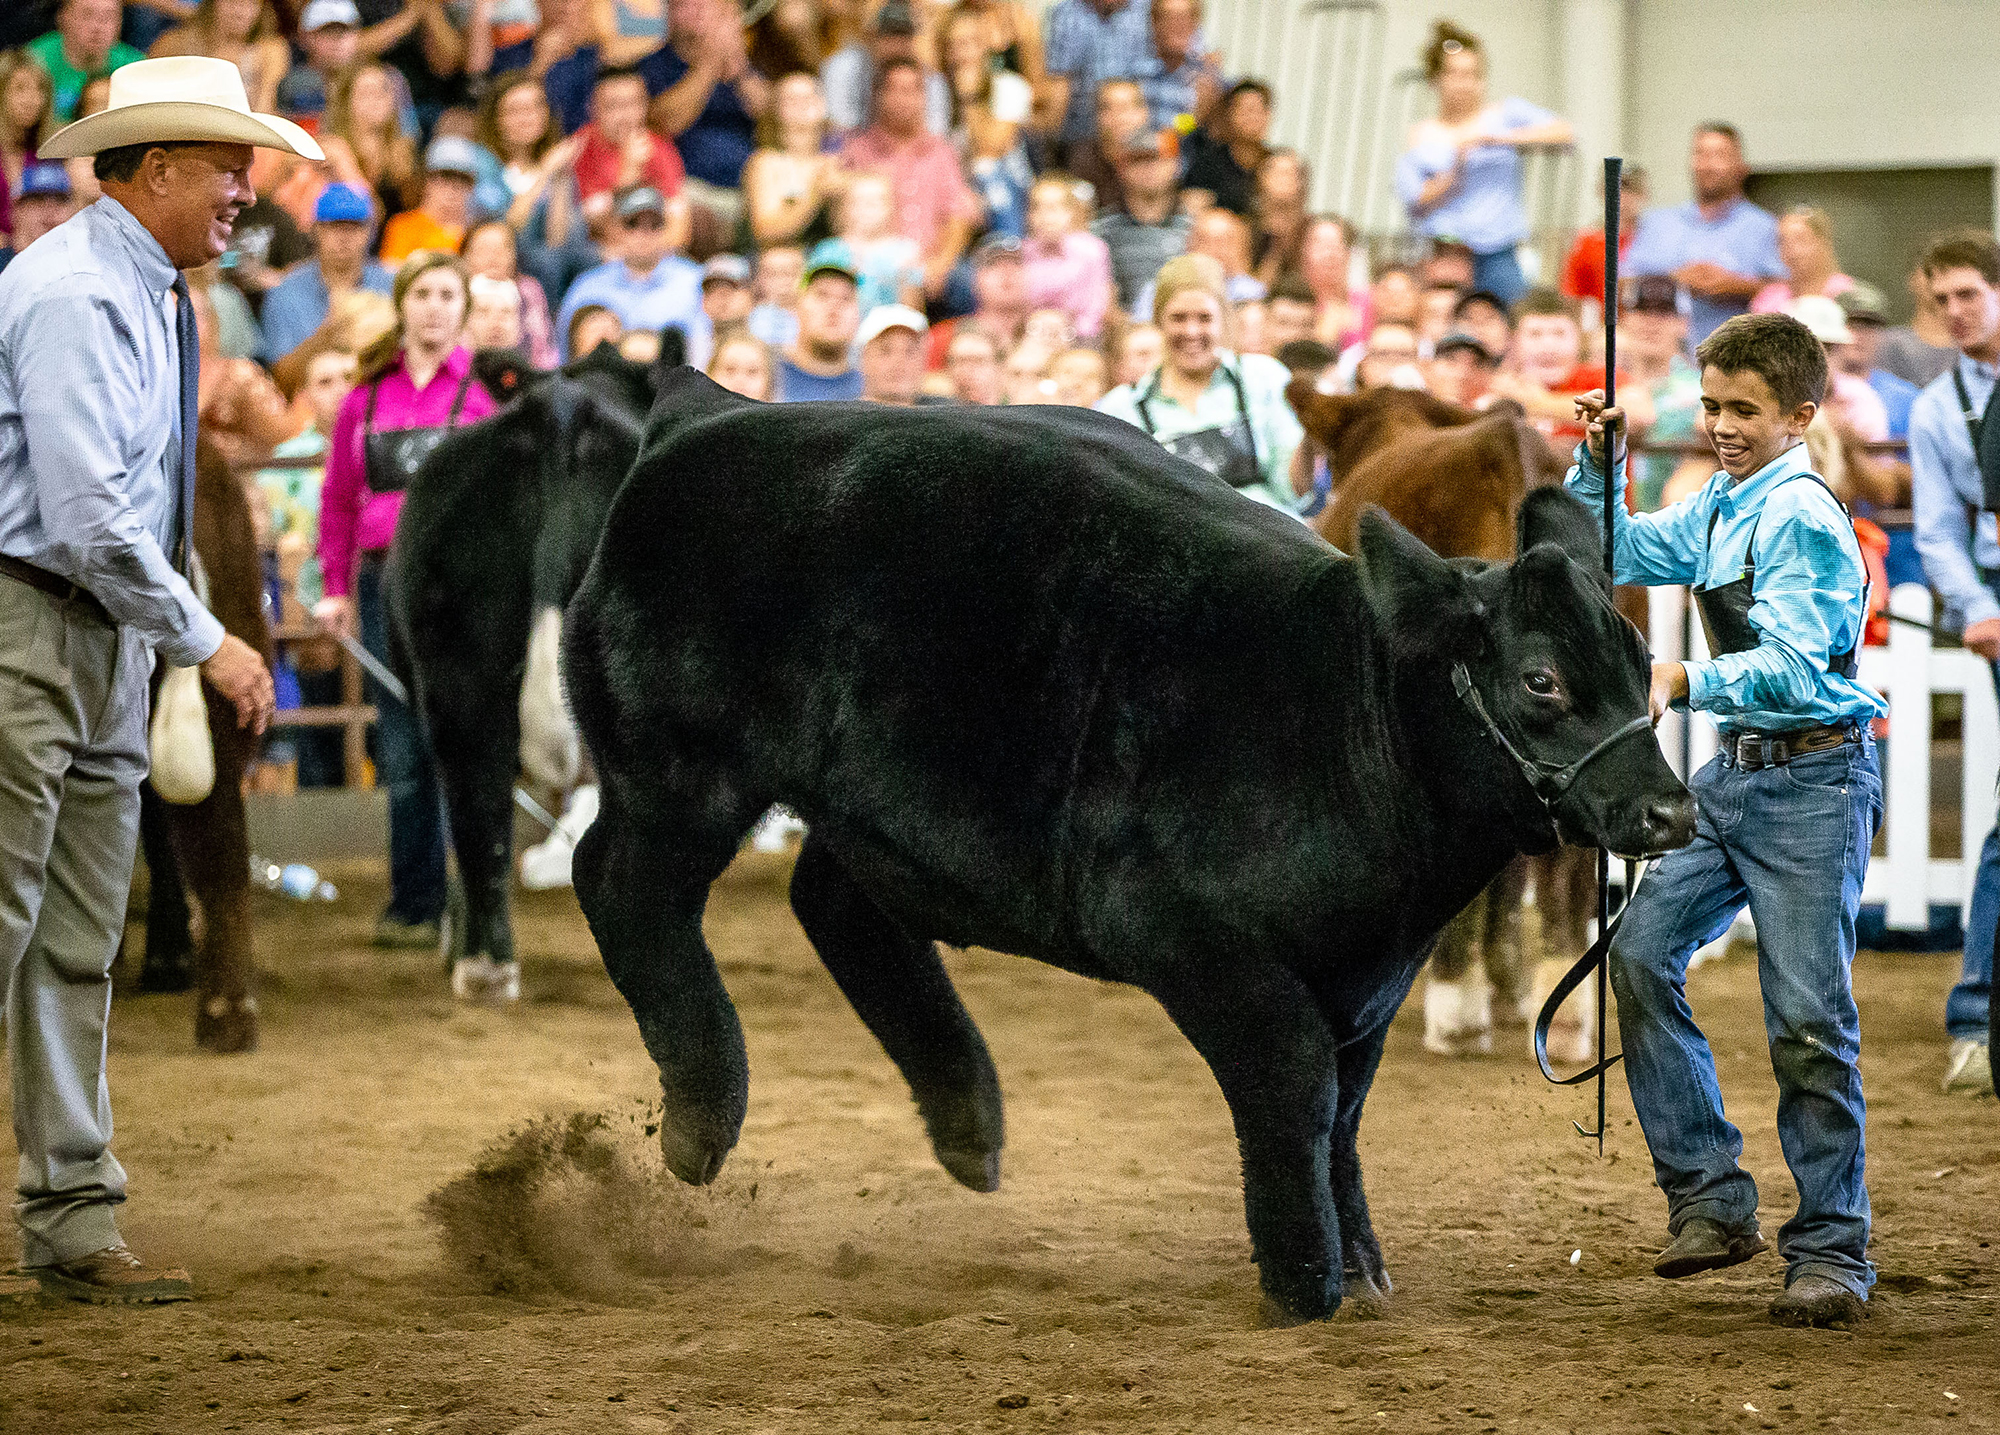 Adam Miller, 13, right, of Gridley, Ill., holds on tight to his Crossbred steer, Taco, when he rears up after being picked as the Grand Champion Steer by judge Chris Skaggs, left, Associate Dean for Student Development at Texas A&M University, during the Parade of Champions at the Illinois State Fair In the Livestock Center at the Illinois State Fairgrounds, Saturday, Aug. 11, 2018, in Springfield, Ill. The winners will go on to be sold during the Governor's Sale of Champions on Tuesday, August, 14, at 5 p.m. at the Livestock Center. [Justin L. Fowler/The State Journal-Register]